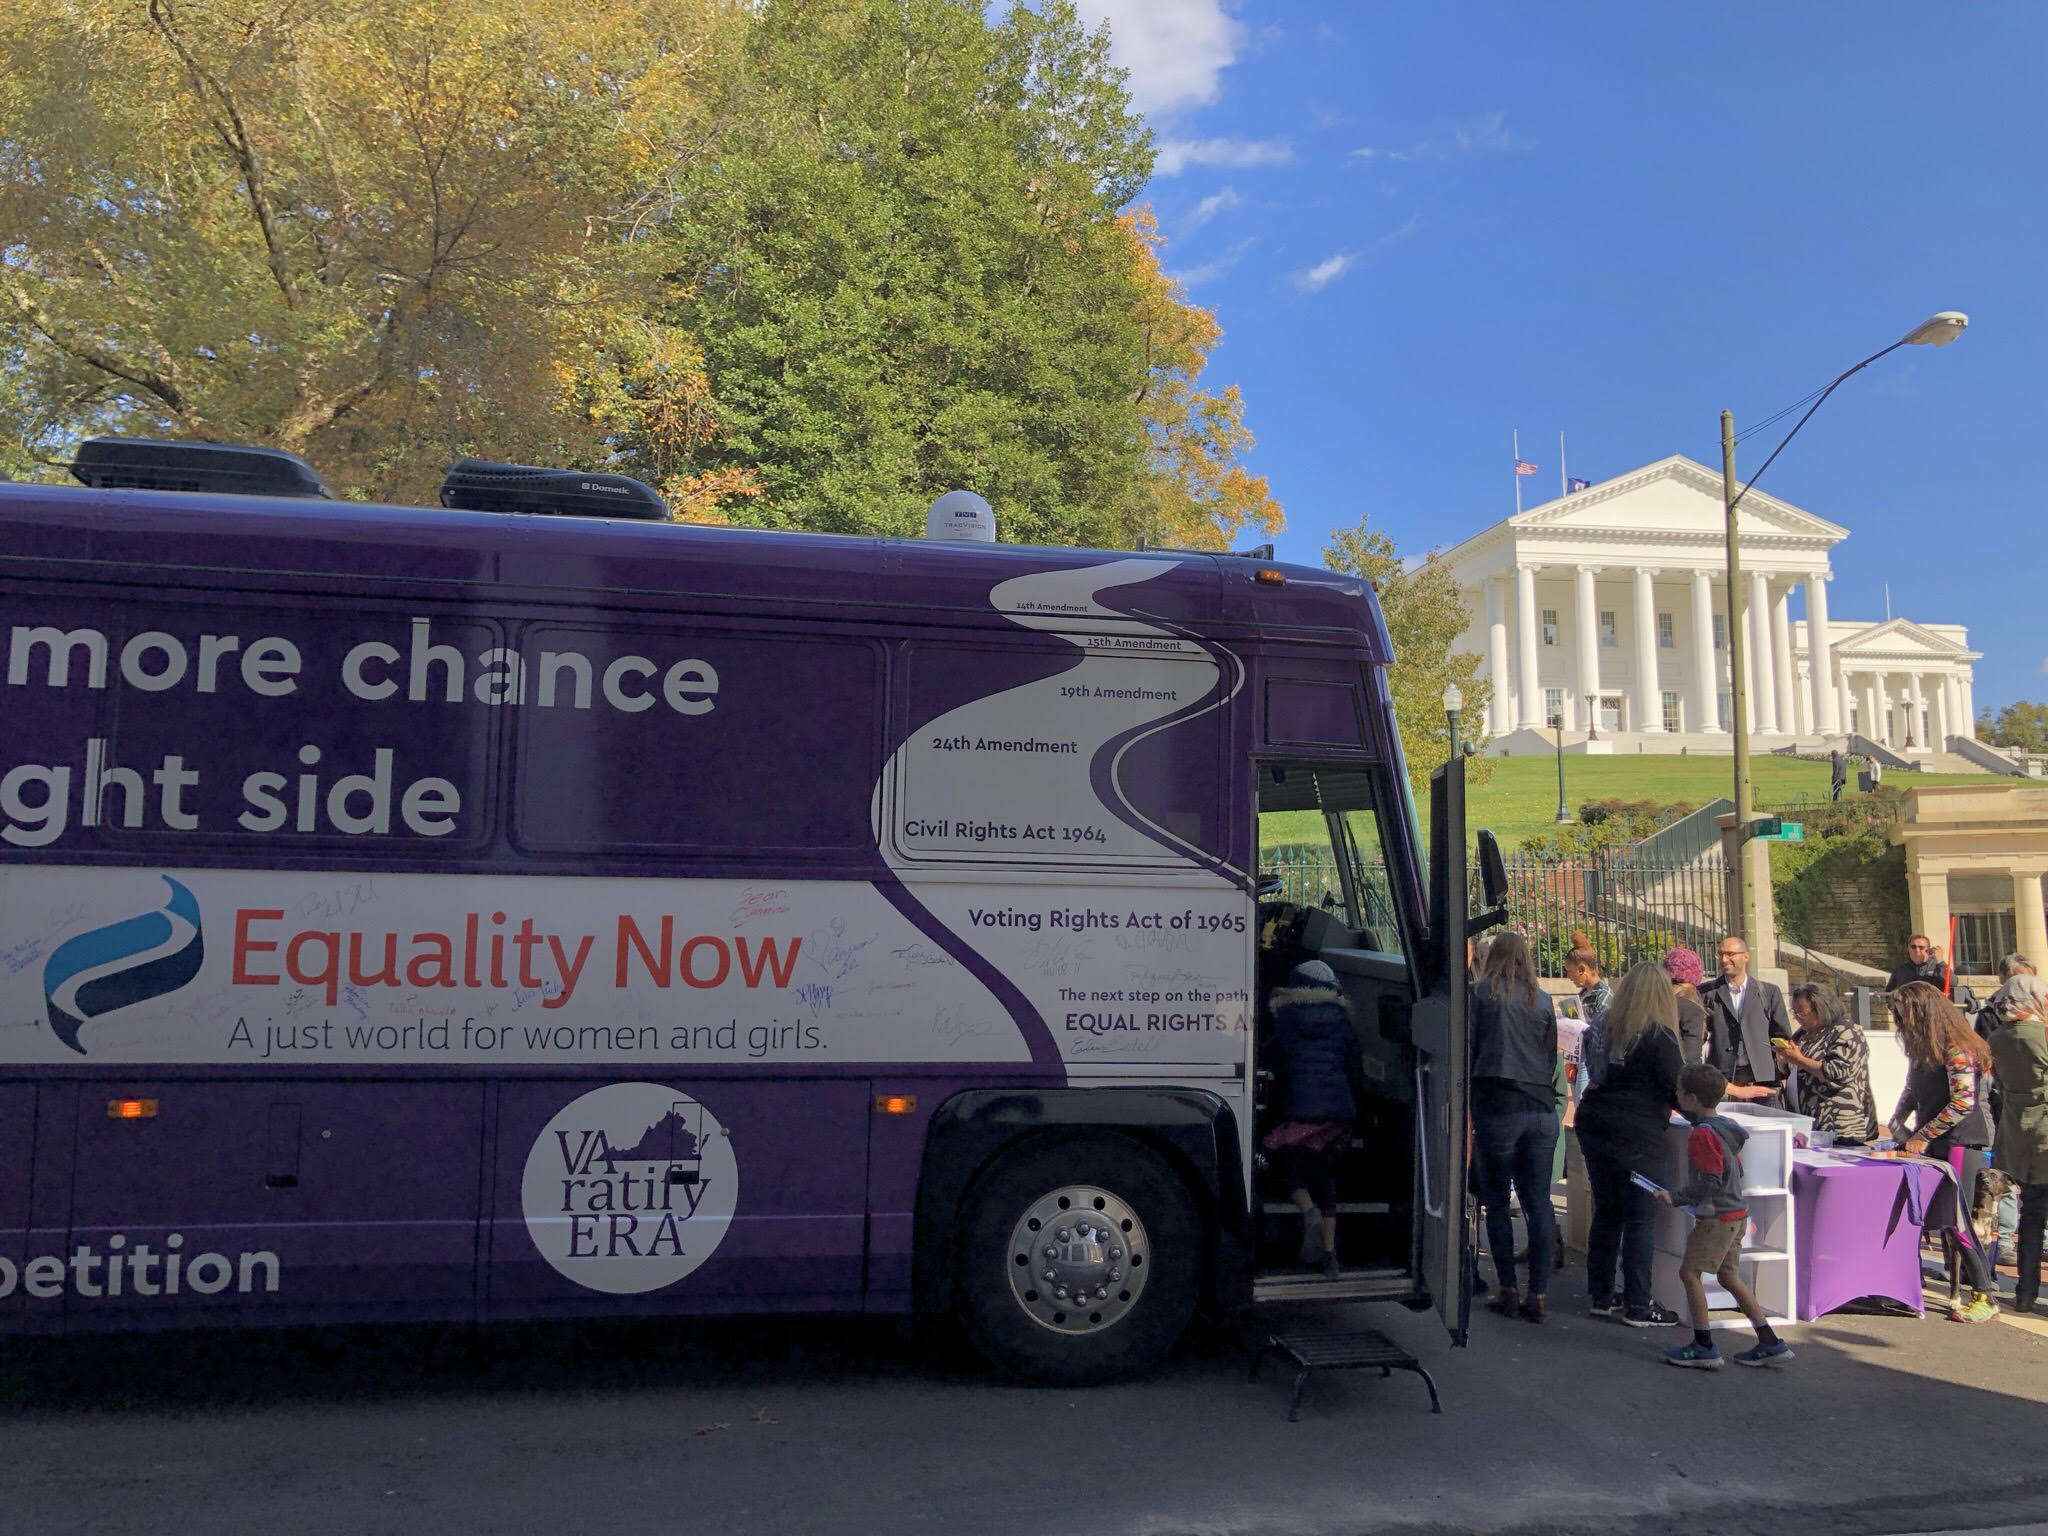 Photograph of a campaign bus parked outside the Richmond Capitol Building in Virginia